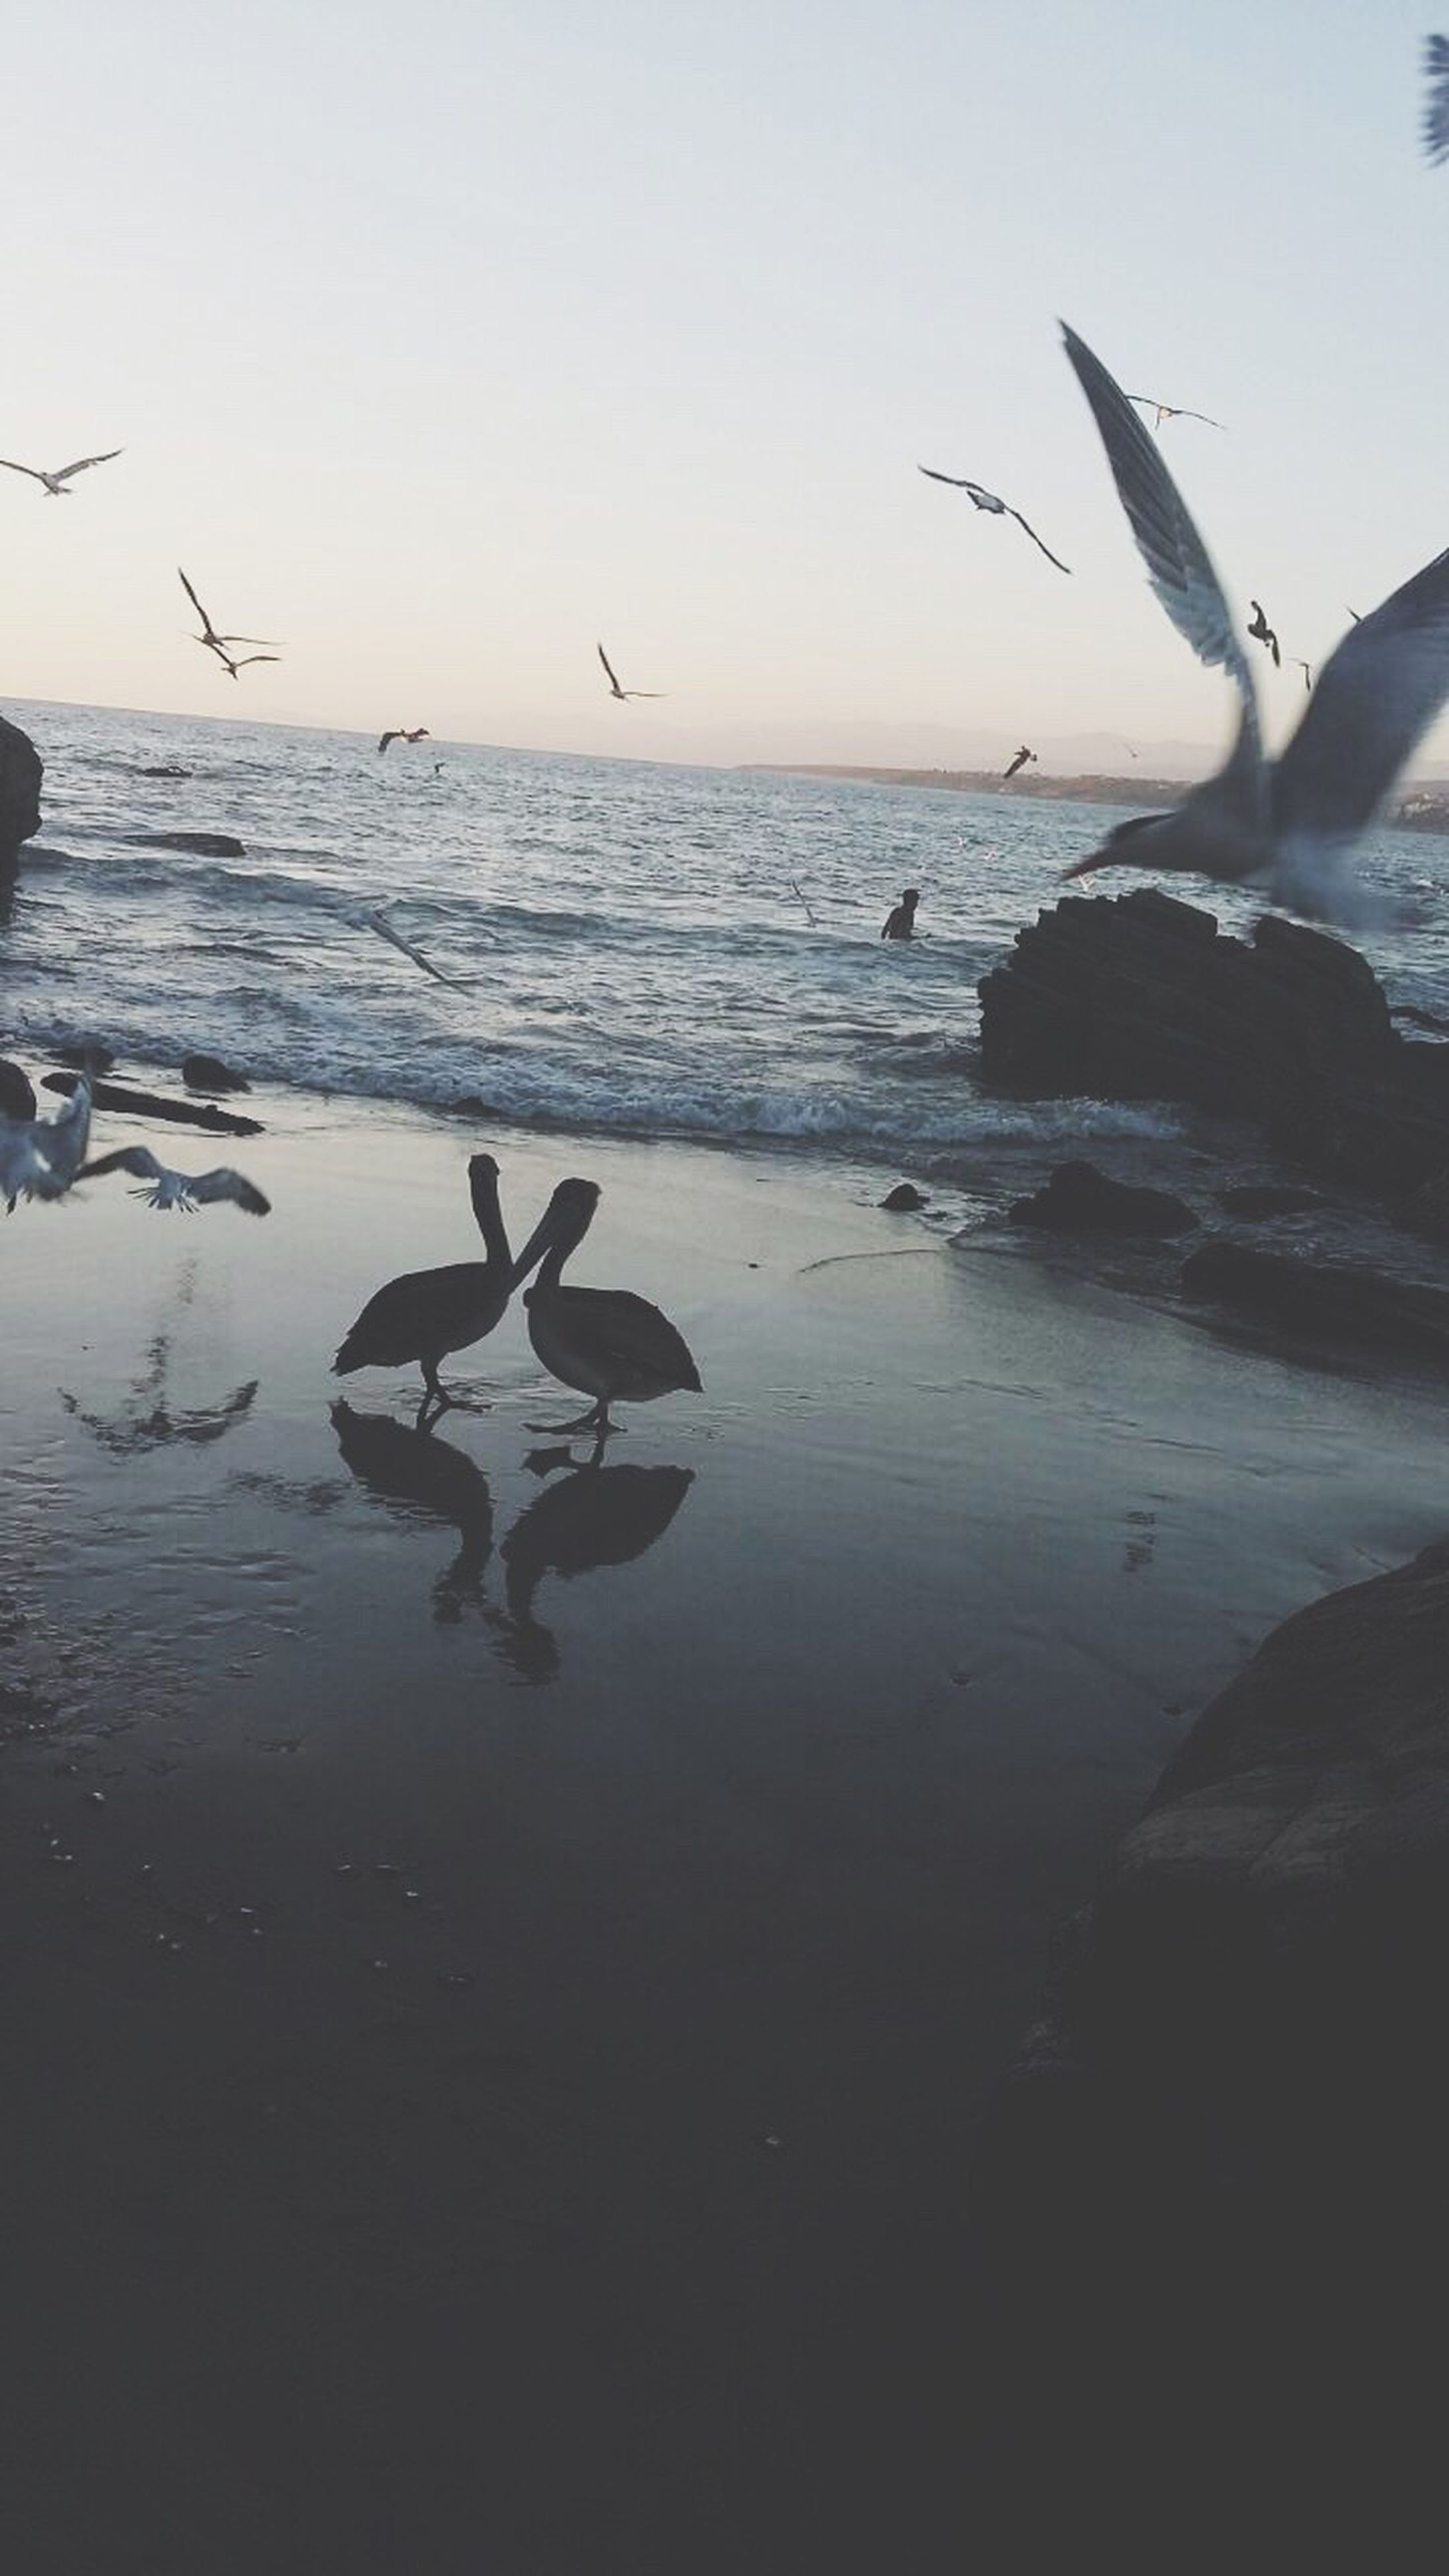 flying, bird, animal wildlife, sunset, animal themes, animals in the wild, one animal, sea, sky, outdoors, animal, silhouette, beach, nature, no people, beauty in nature, water, day